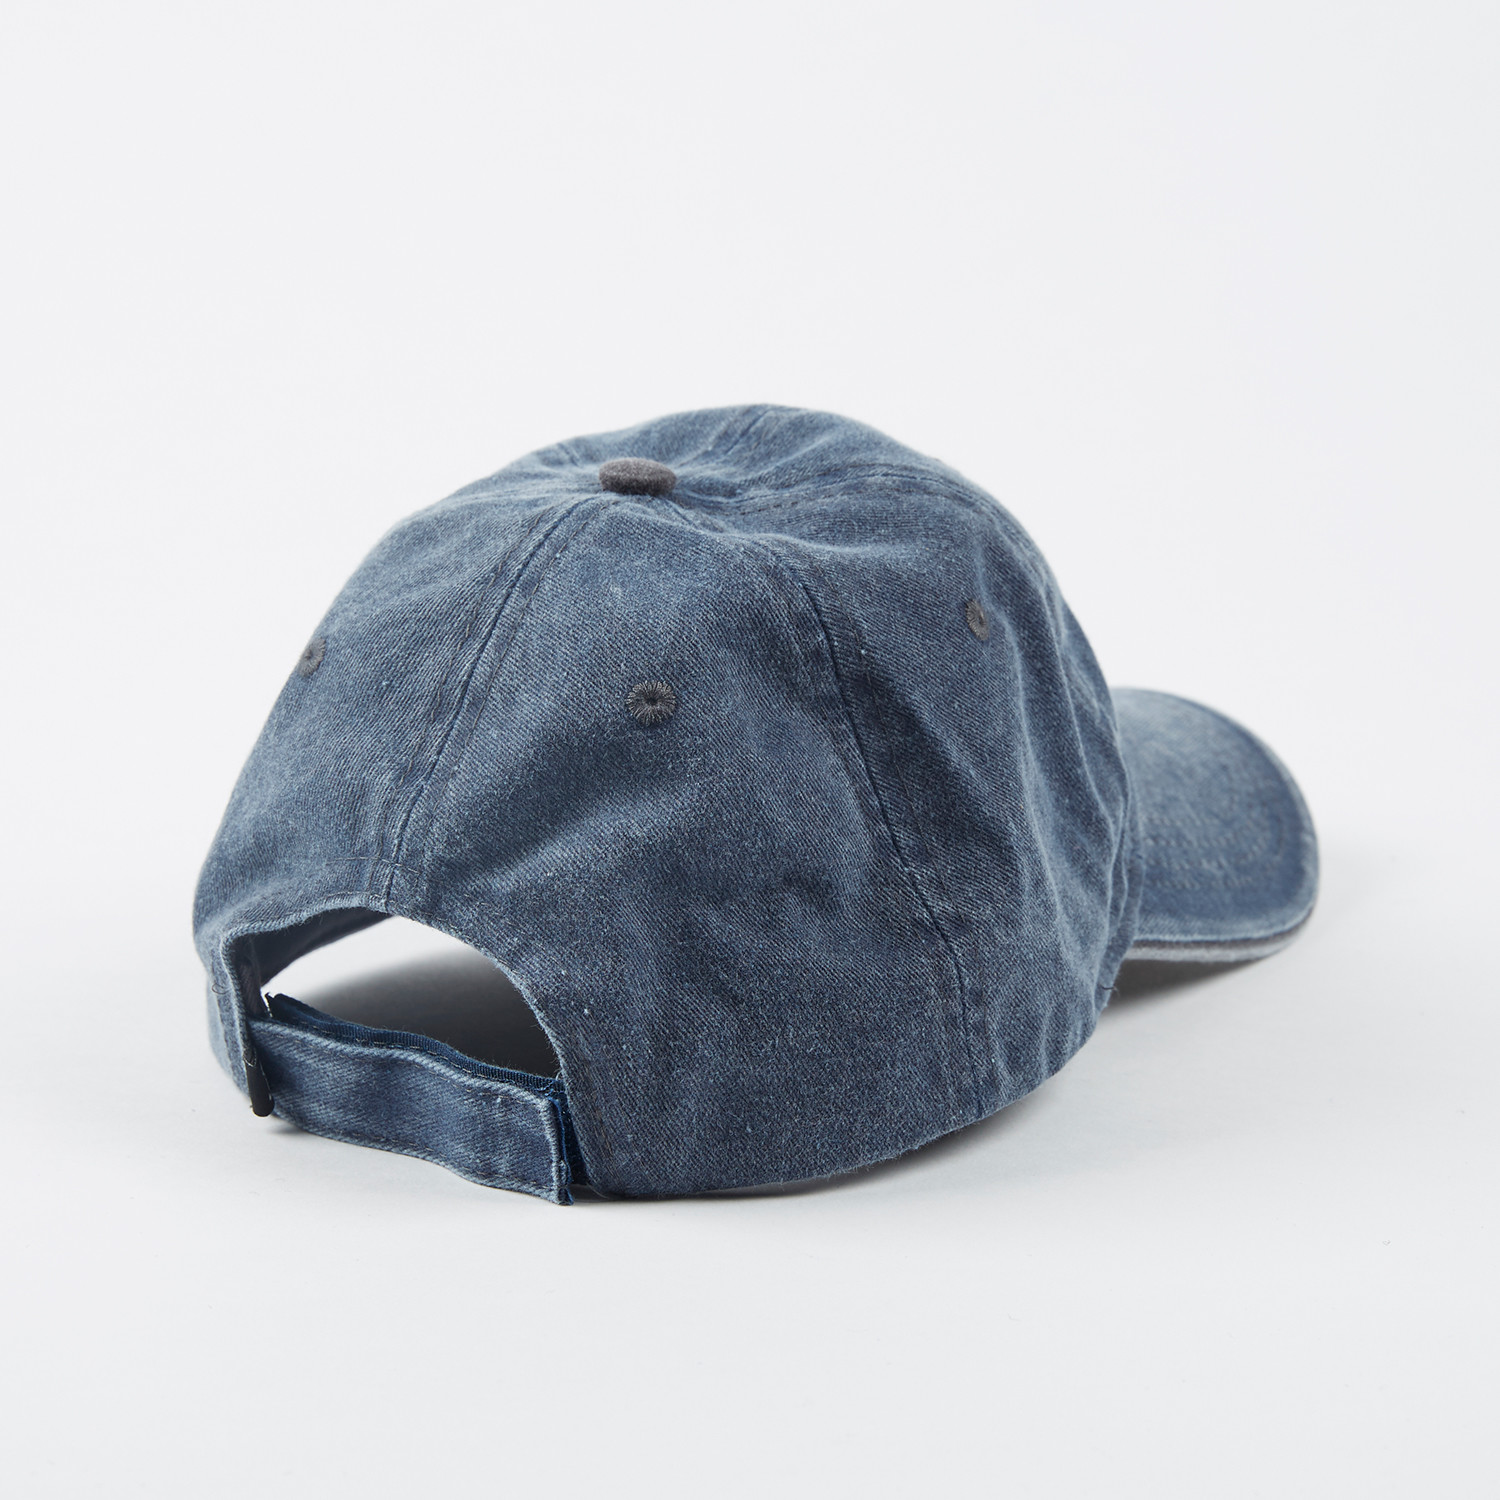 Denim Pigment Cap // Navy + Grey - FITS